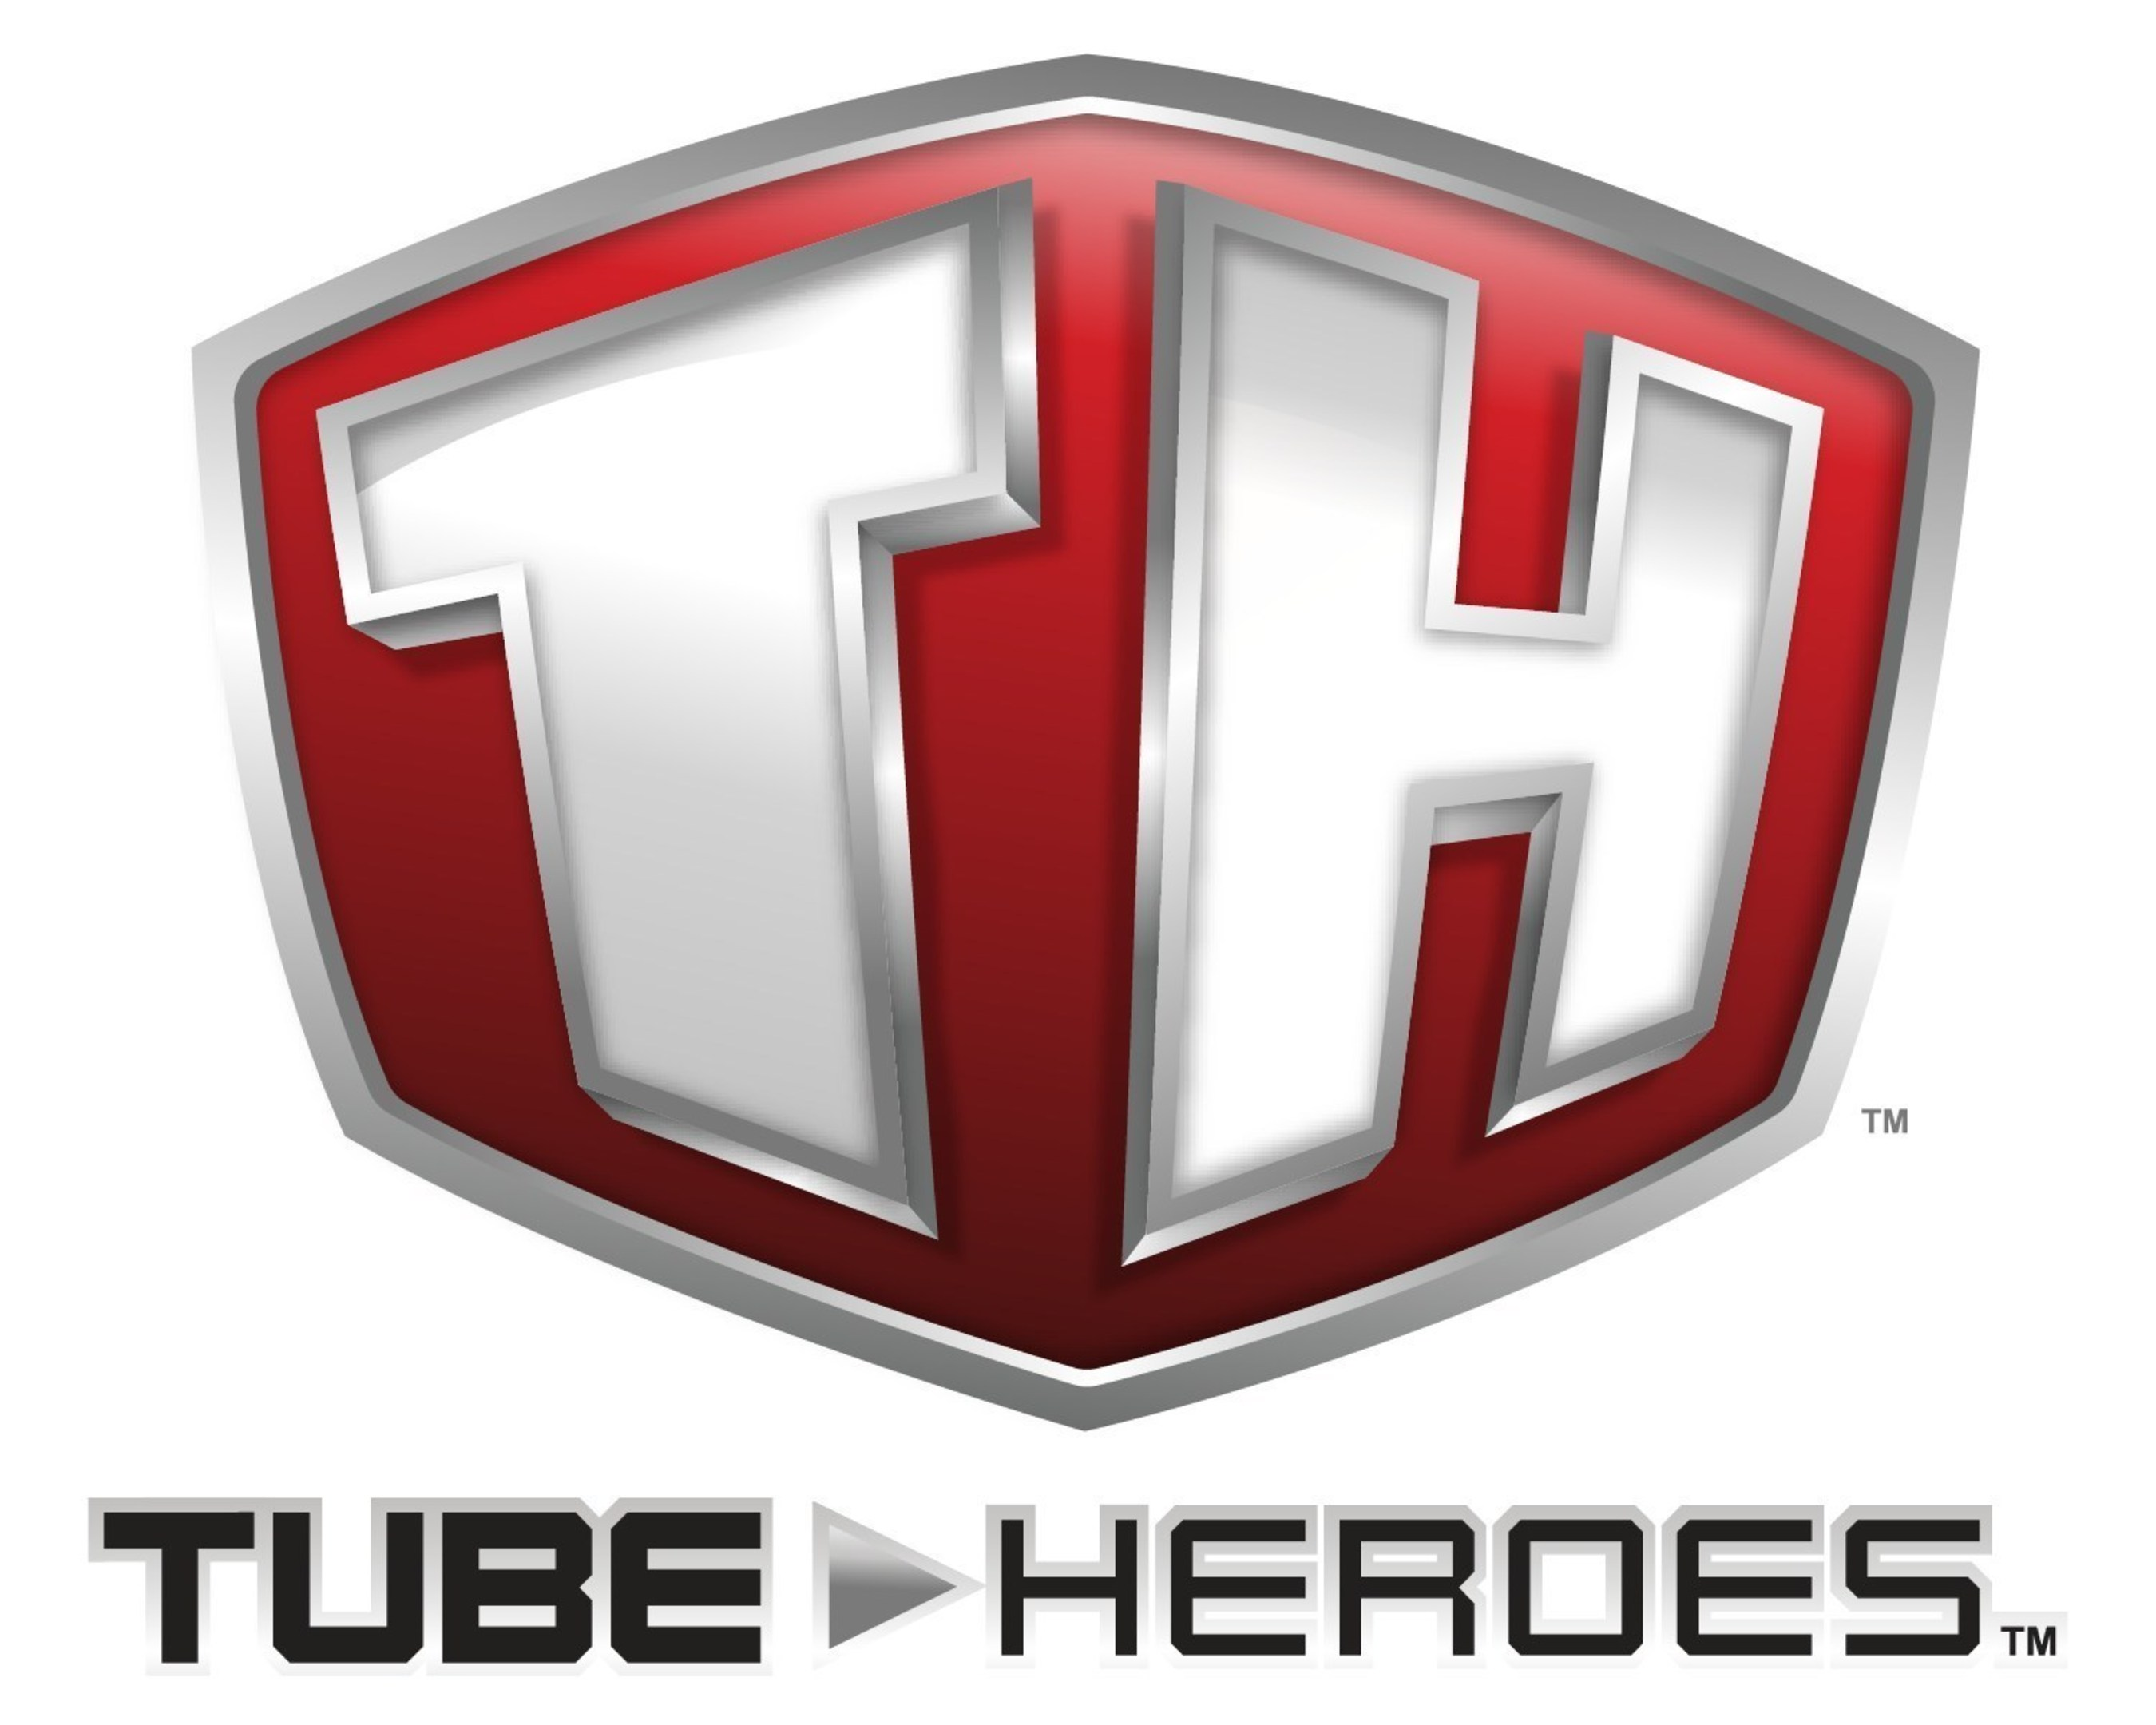 Real is the new cool this holiday season with Tube Heroes toys